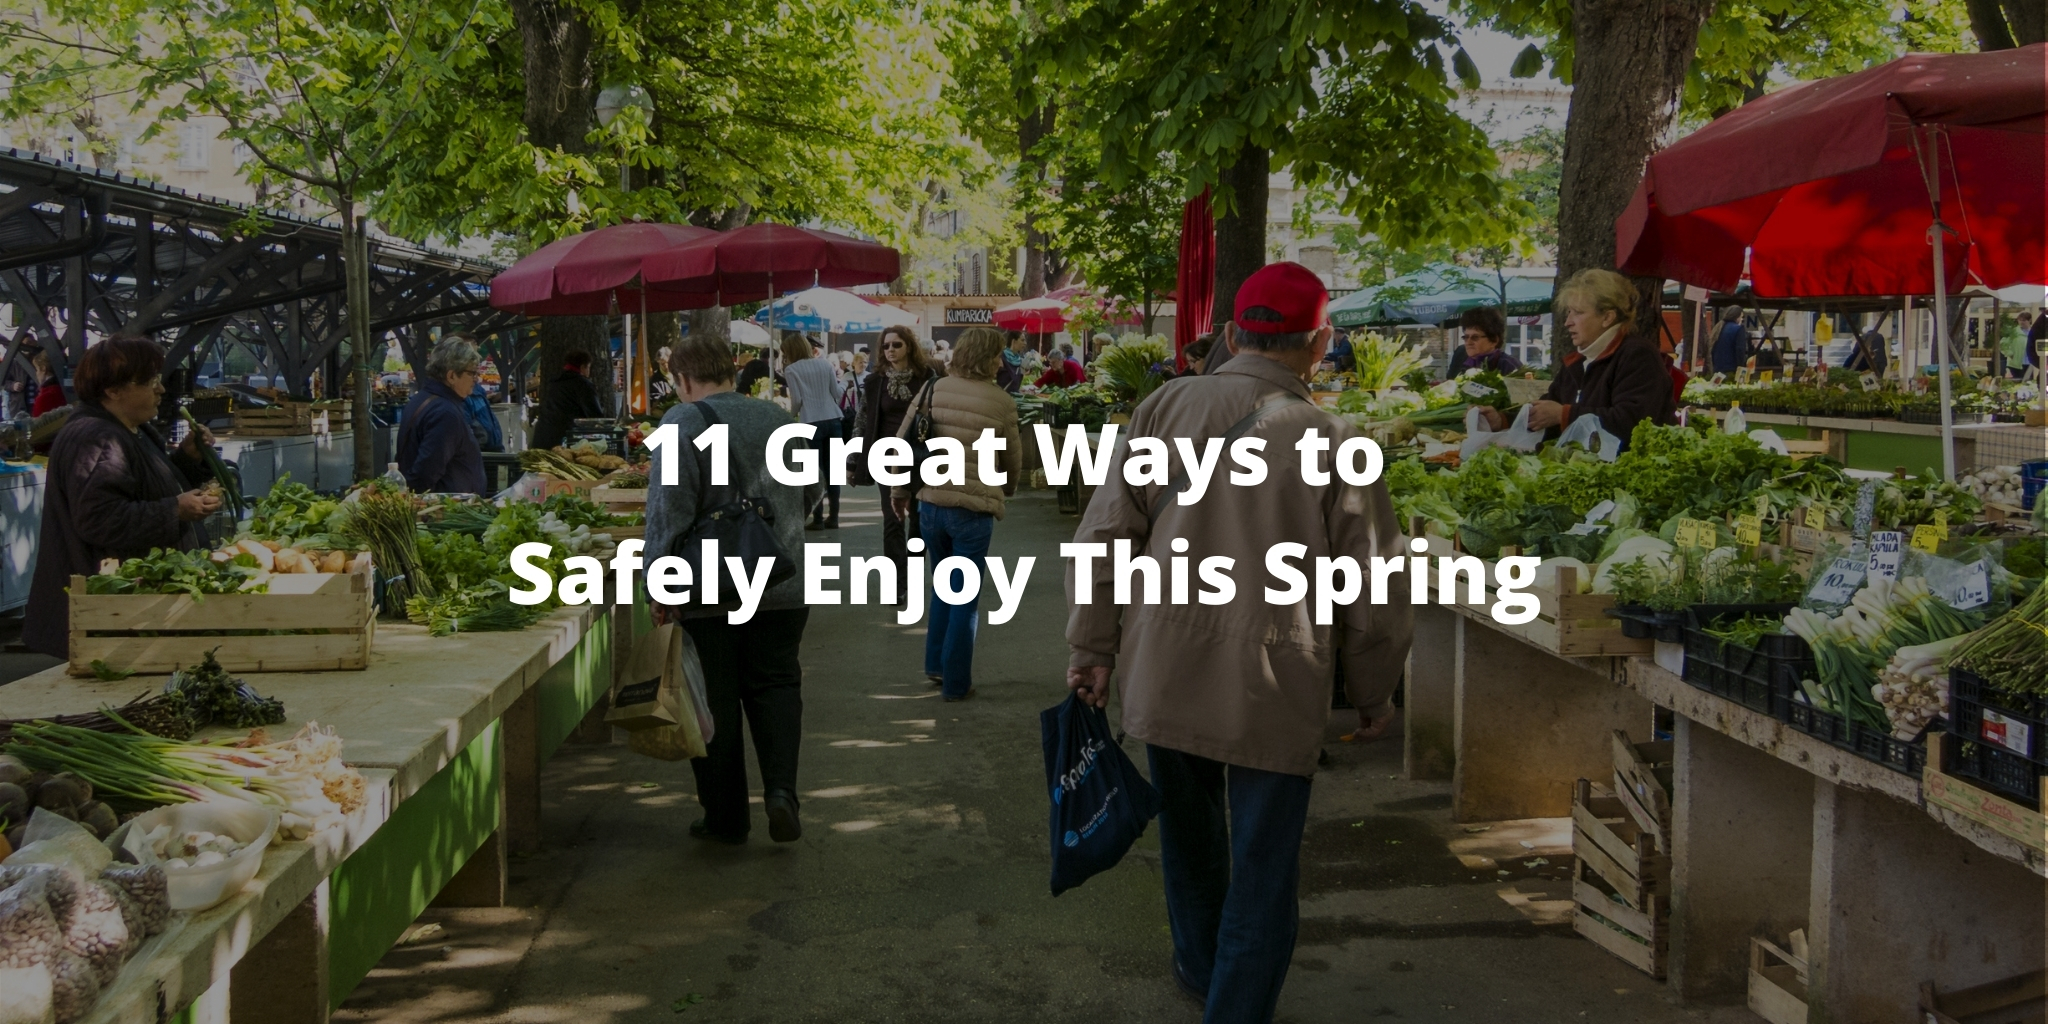 11 Great Ways to Safely Enjoy This Spring